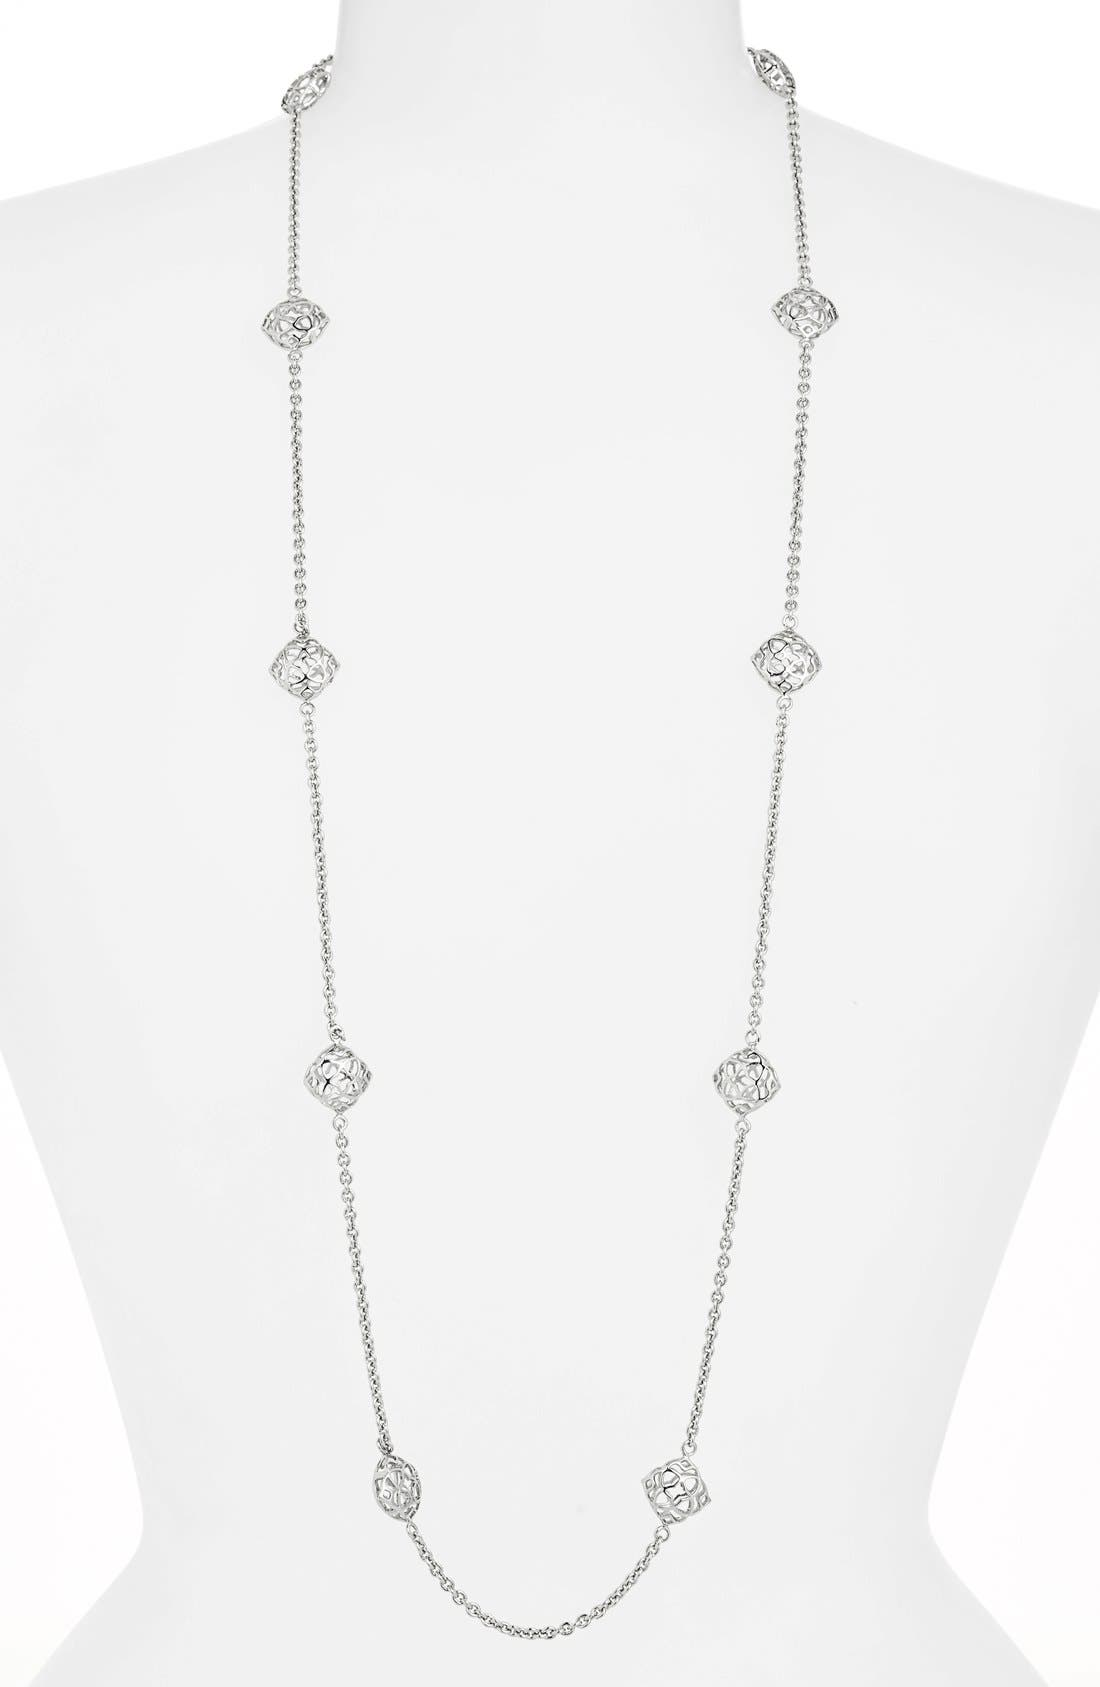 Main Image - Kendra Scott 'Nemera' Long Station Necklace